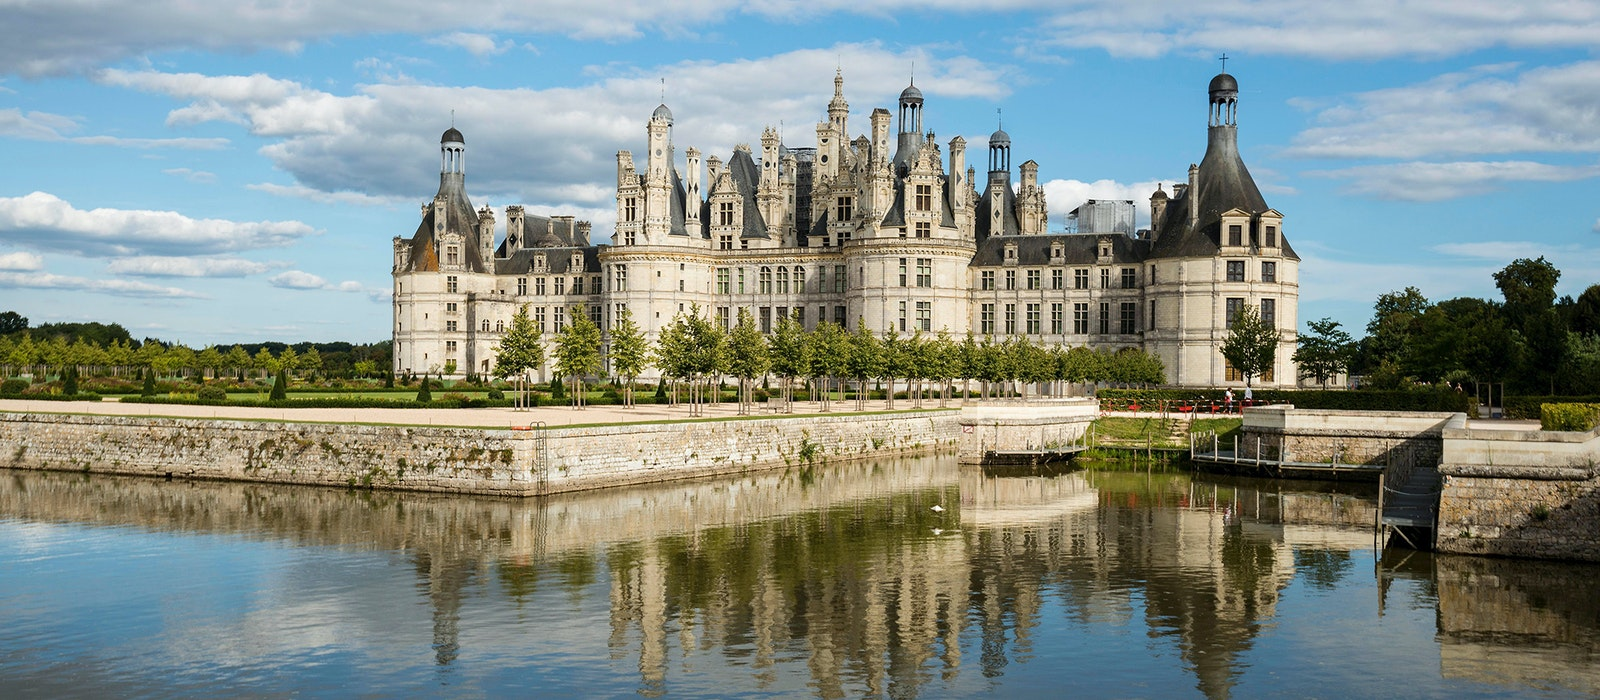 Château de Chambord is a jewel of the Loire Valley.